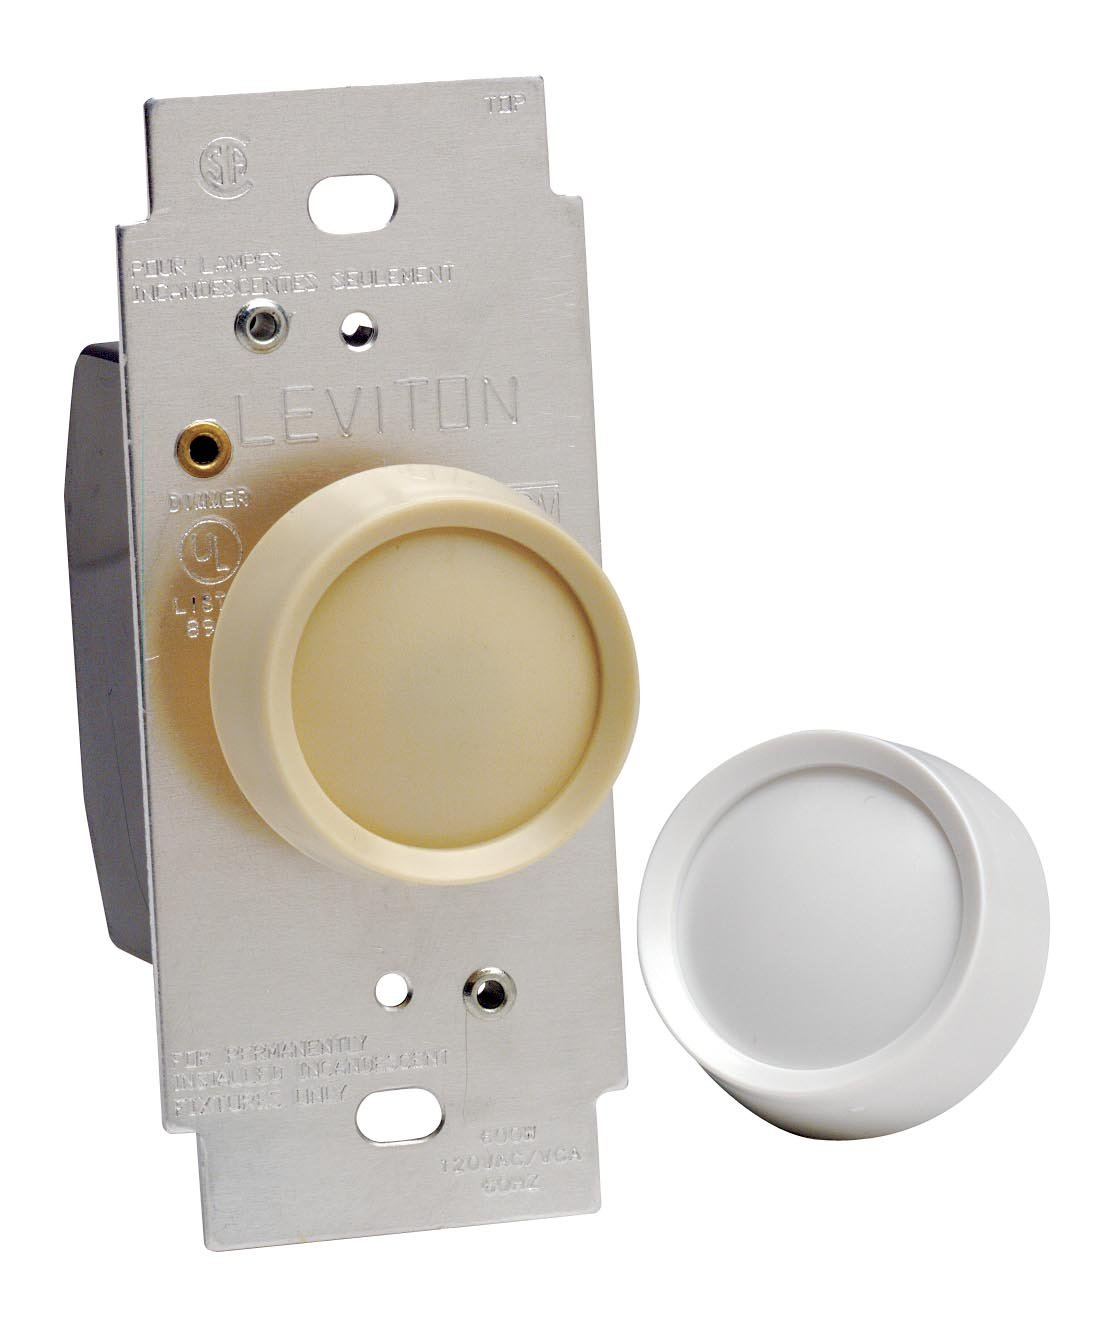 Leviton 6602-IW Trimatron 600W Incandescent Rotary Dimmer, Single Pole,  White/Ivory - Wall Dimmer Switches - Amazon.com